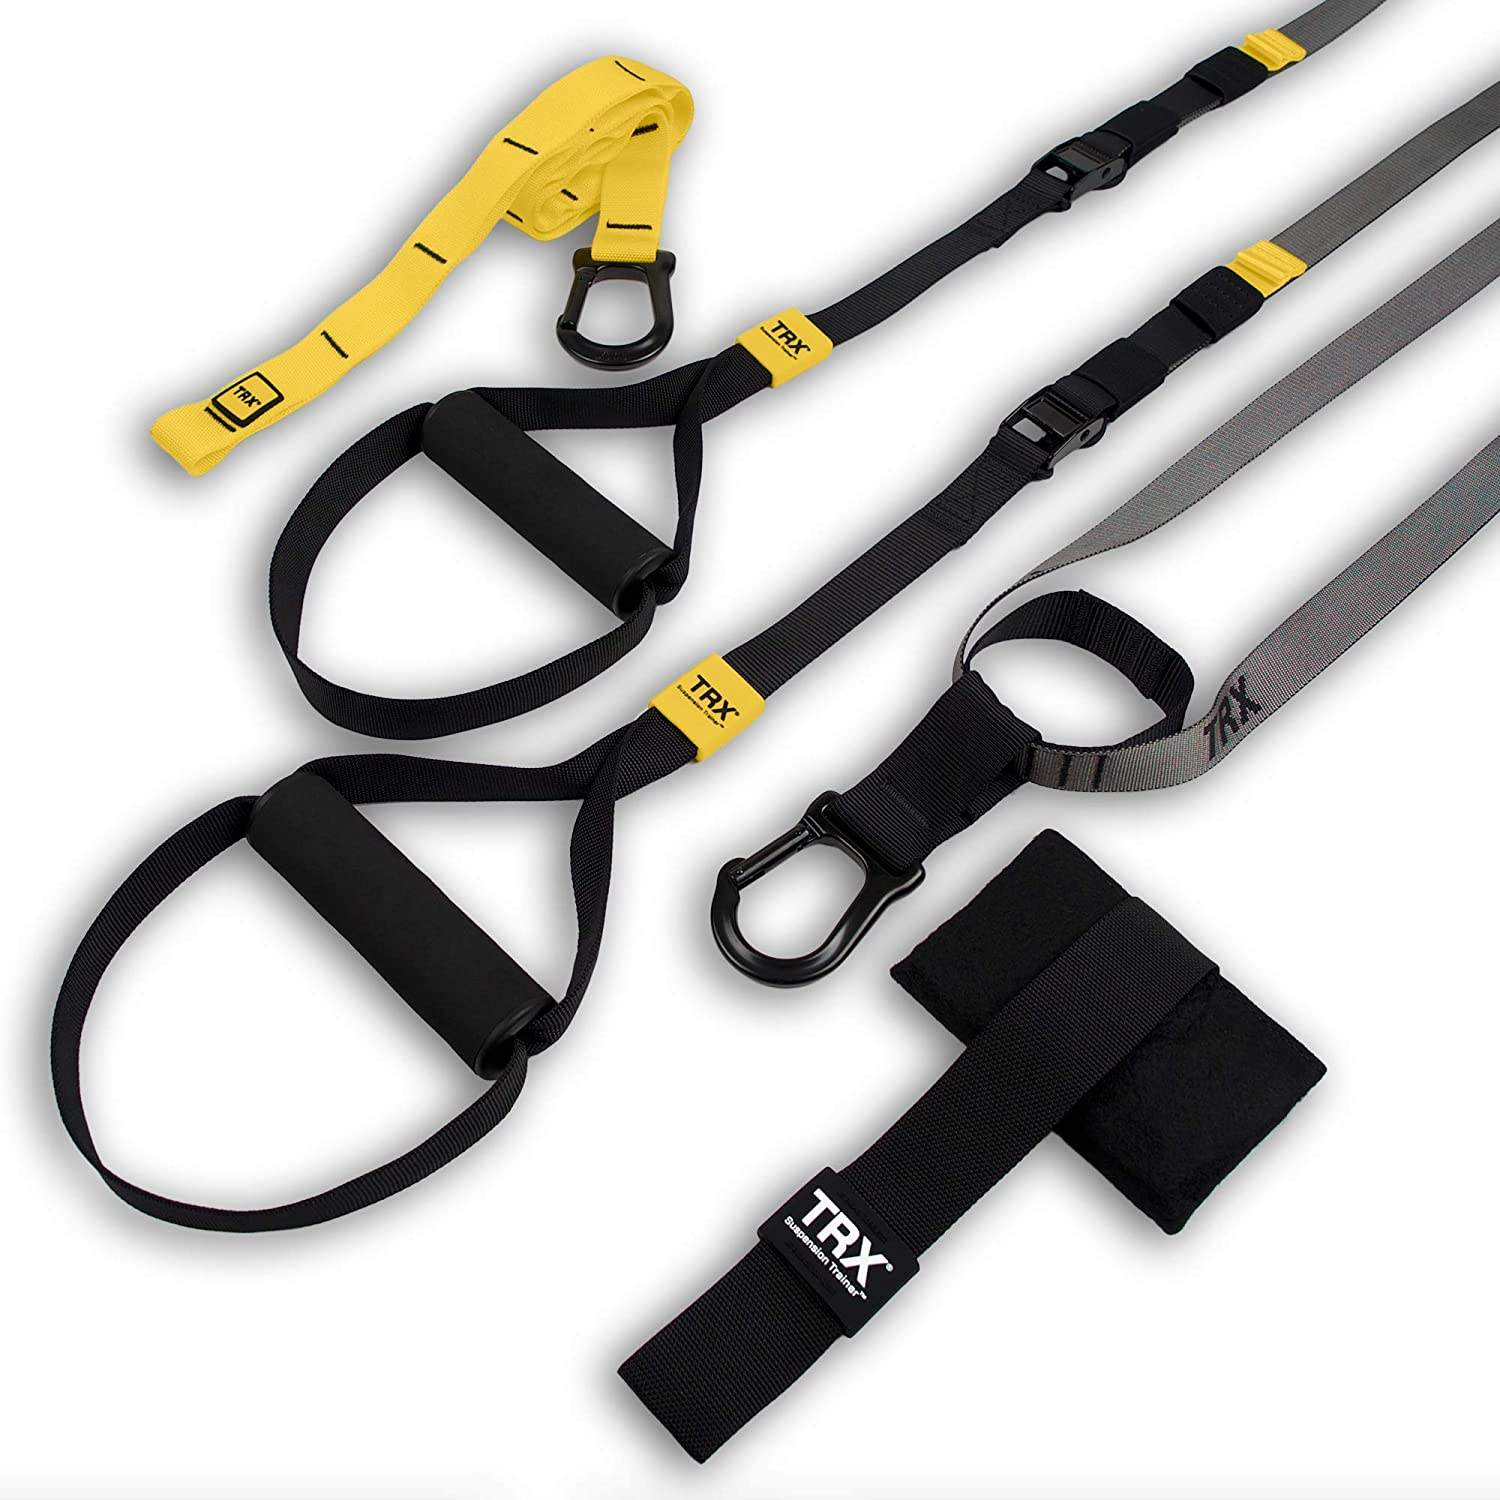 Bodyweight Resistance Training Straps Kit Complete Home Gym Fitness Trainer kit for Full-Body Workout